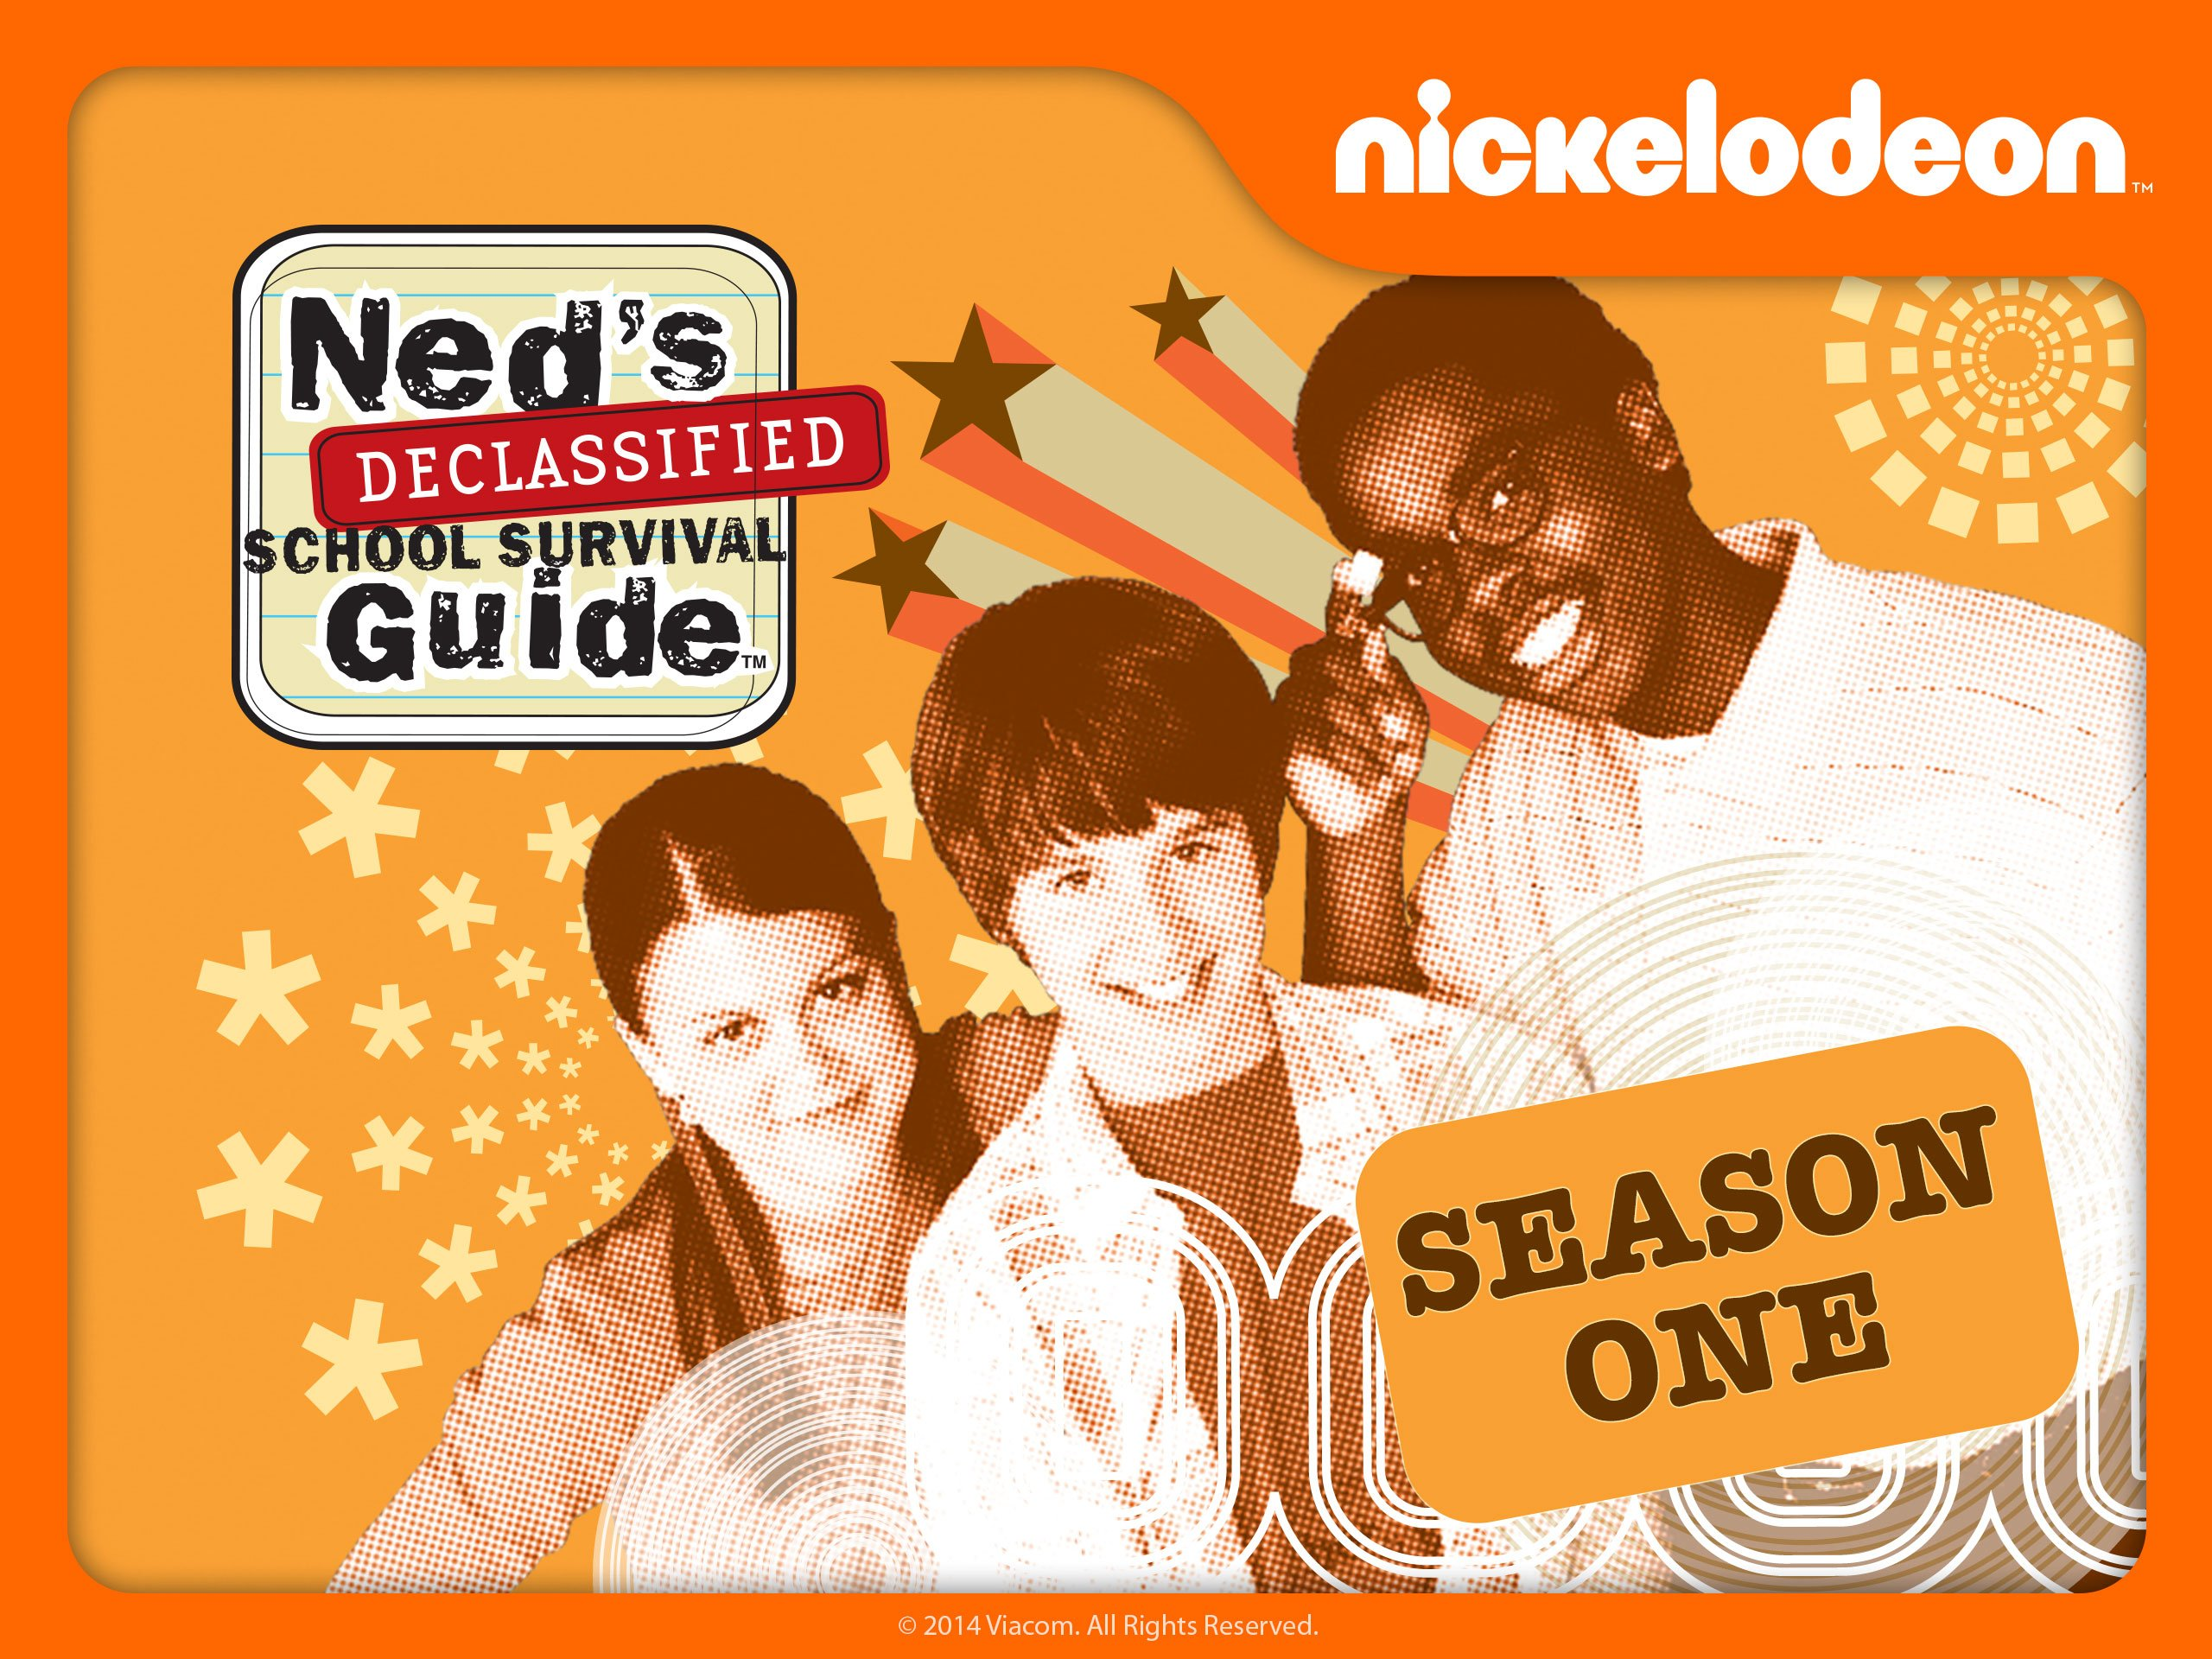 Ned's declassified school survival guide (a titles & air dates guide).